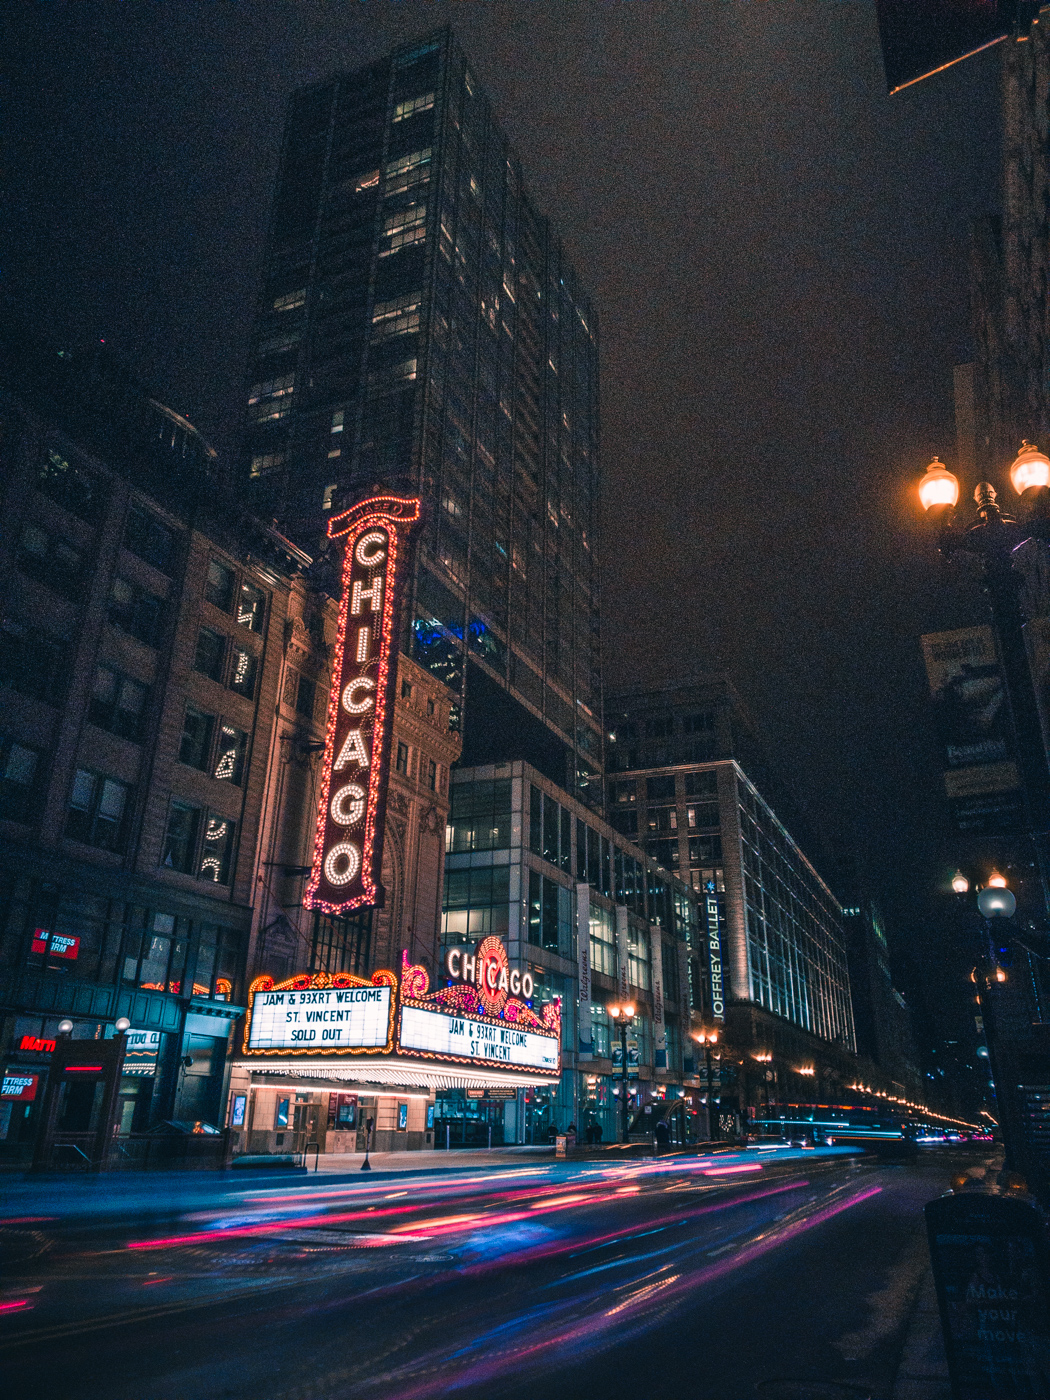 Chicago Theater. ASUS ZenFone 4 Pro. 2.5s, f/1.7, ISO 25